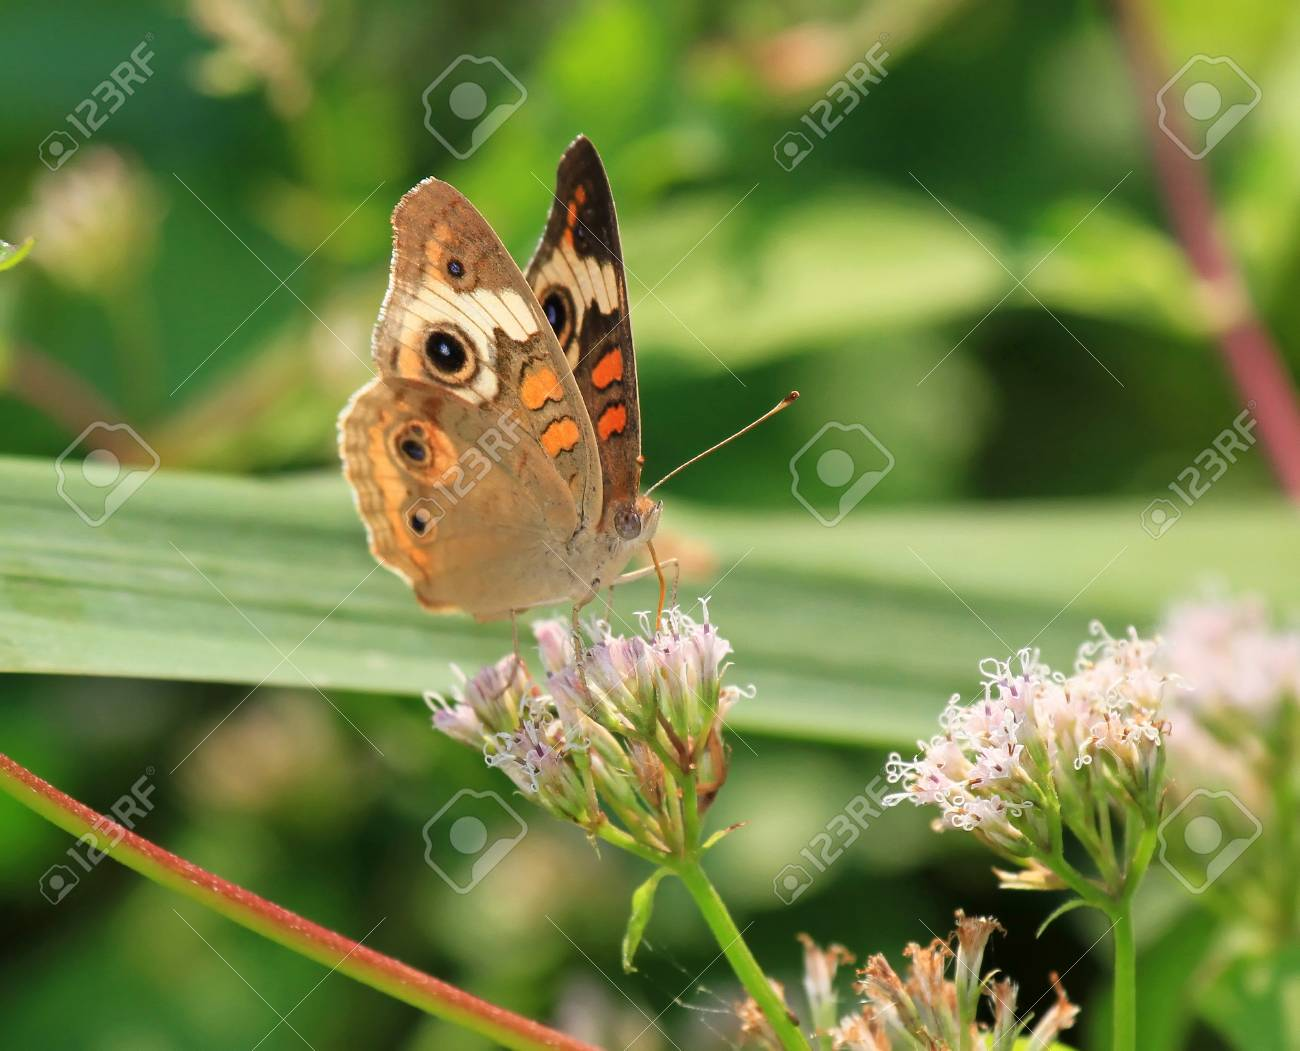 Common Buckeye Schmetterling Futterung Auf Wiese Wildblumen In